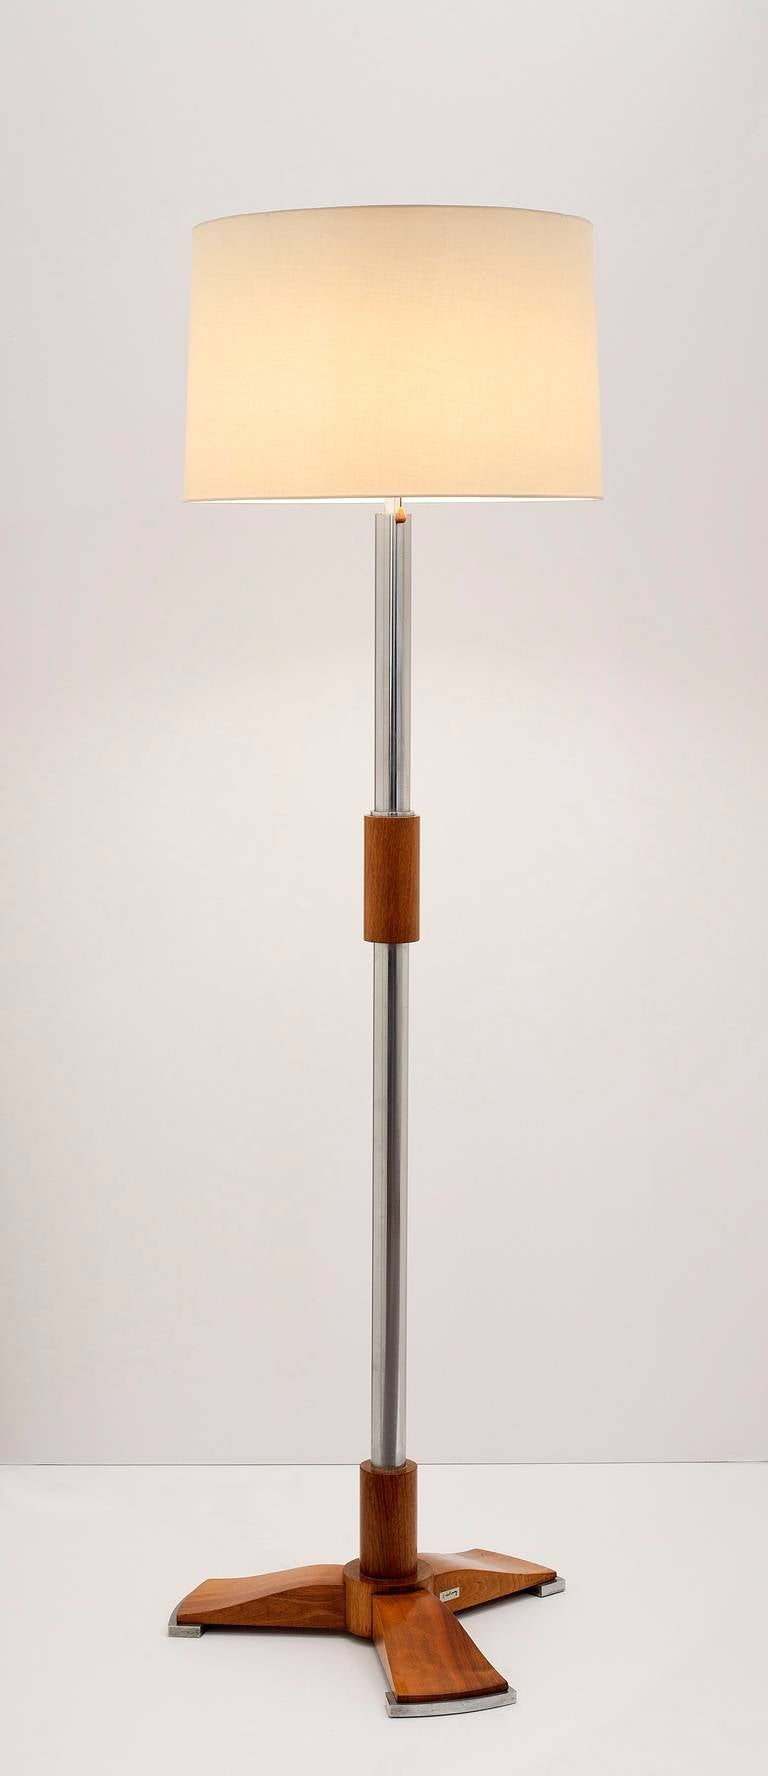 Art Deco floor lamp in French walnut and chromed metal by Jules Leleu.  Signed on base: J. Leleu.  An identical floor lamp was exhibited in the two museum retrospectives on Leleu: Leleu 50 ans de mobilier et de décoration, 1920-1970 at the Musée des